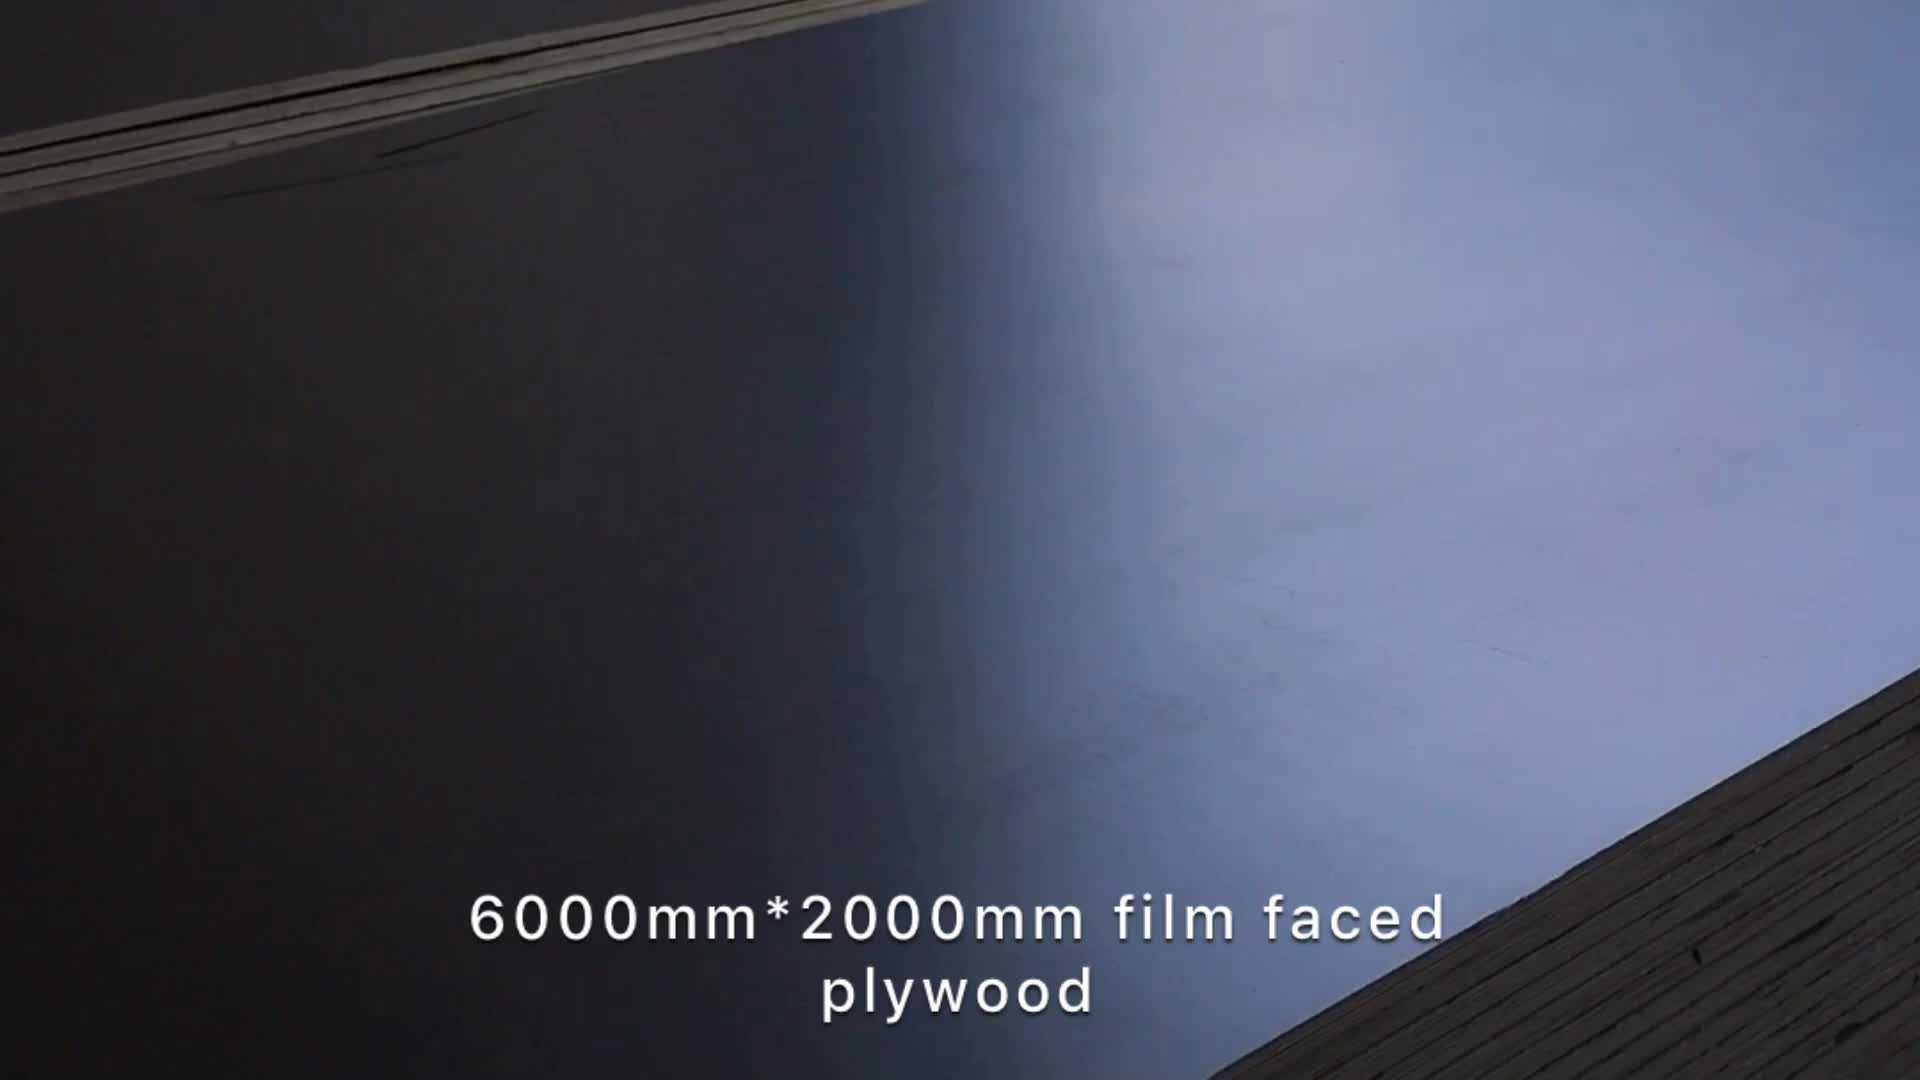 5400mmx2000mm 3000mmx1500mm JUMBO LARGE BIG SIZE FILM FACED PLYWOOD